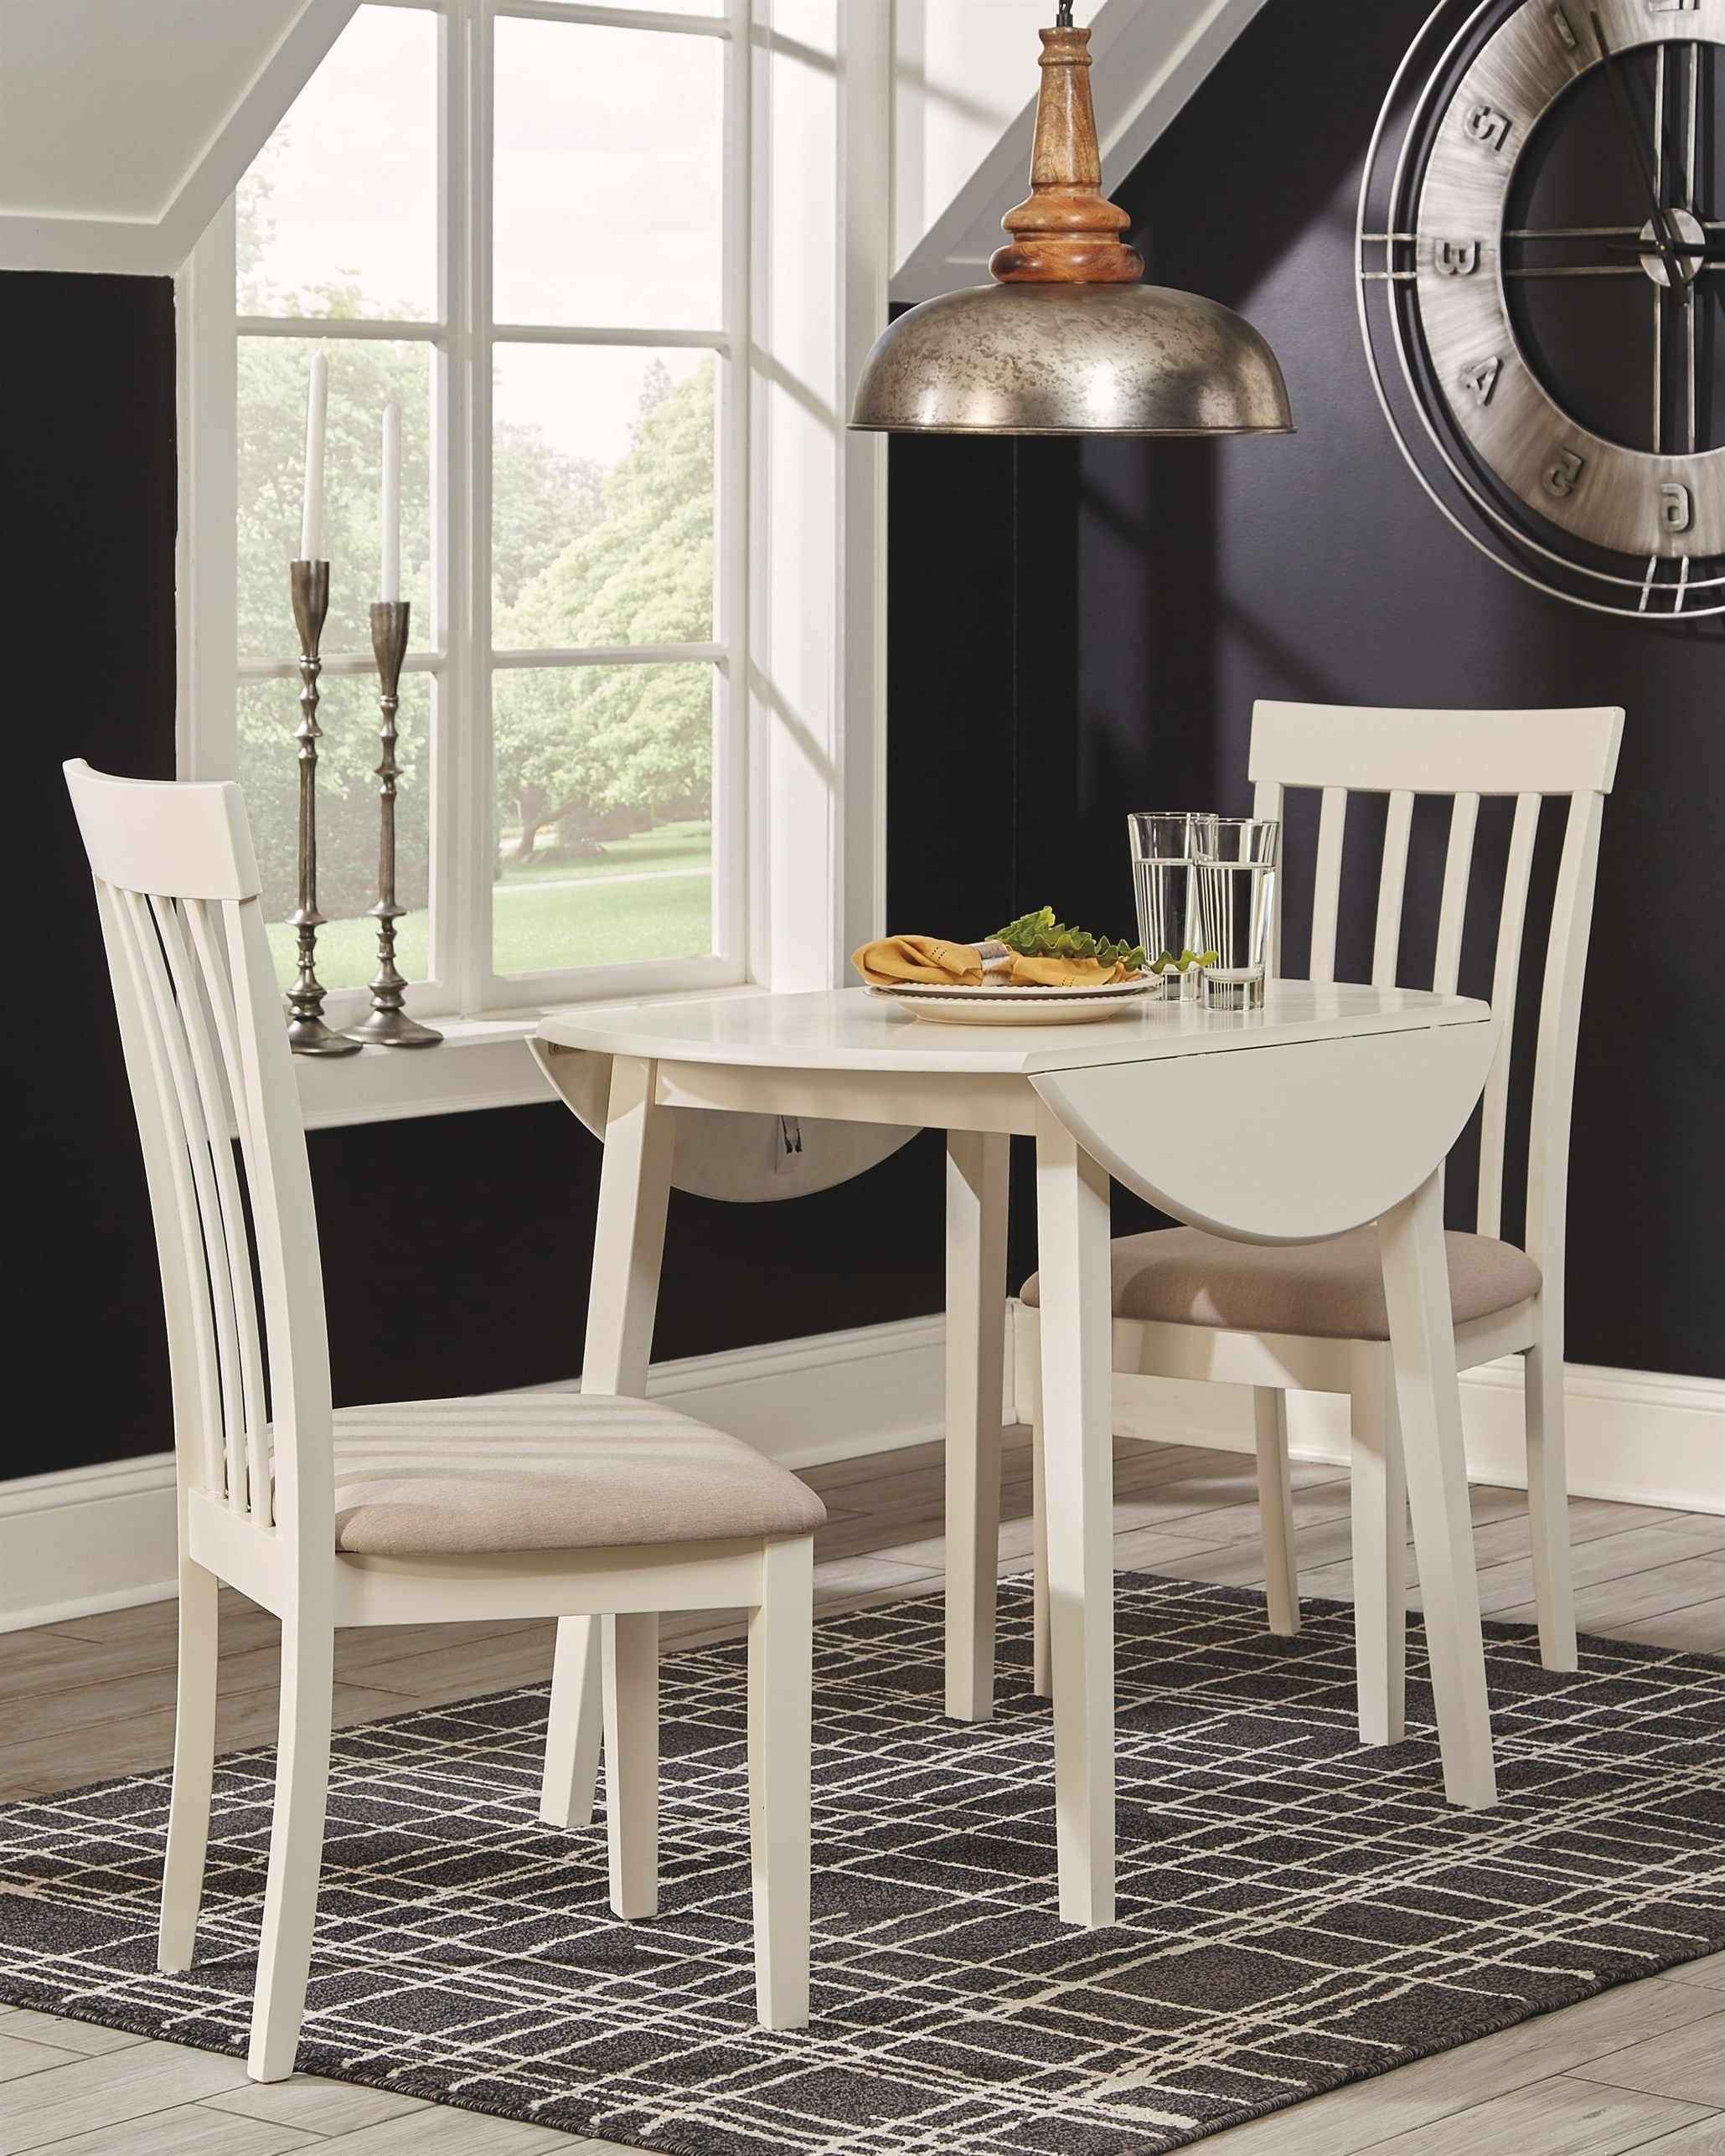 Recent Market 7 Piece Dining Sets With Host And Side Chairs In Slannery Dining Room Chair (Set Of 2), White #diningroomchairs (View 19 of 25)